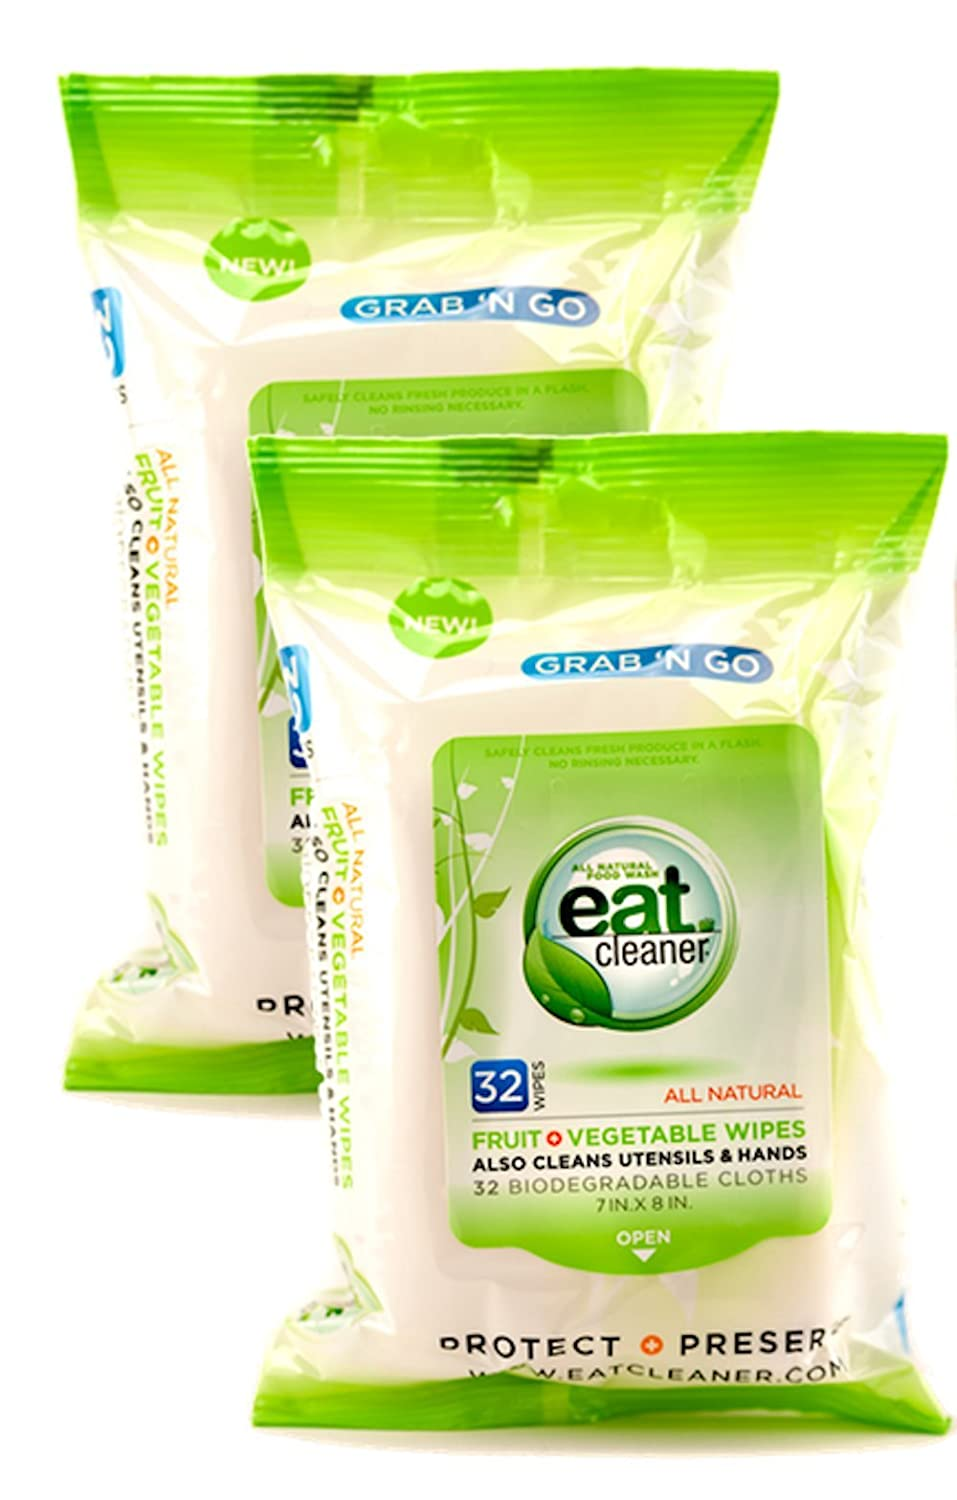 Eat Cleaner Biodegradable Food-Grade Travel Wipes Kit 32 (2 pack)